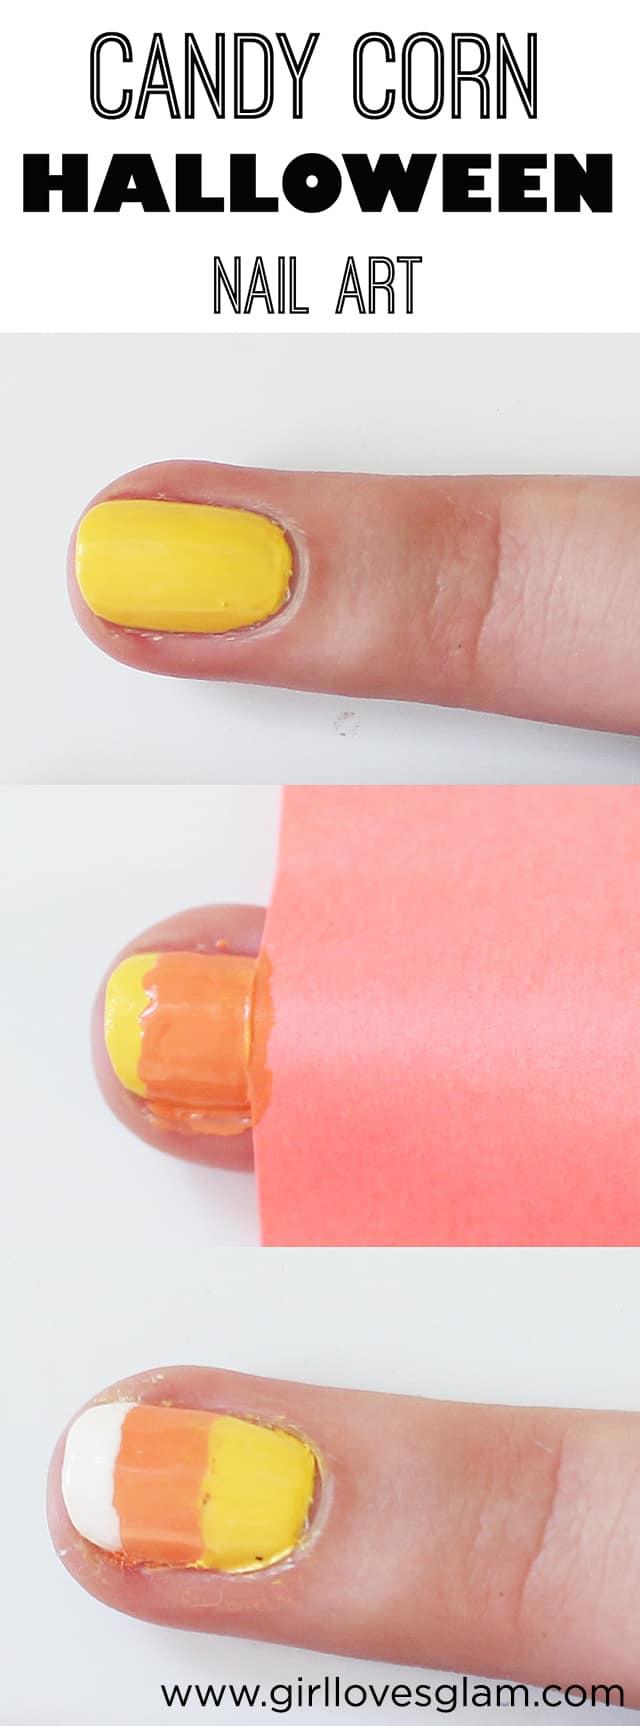 Candy Corn Nail Art on www.girllovesglam.com